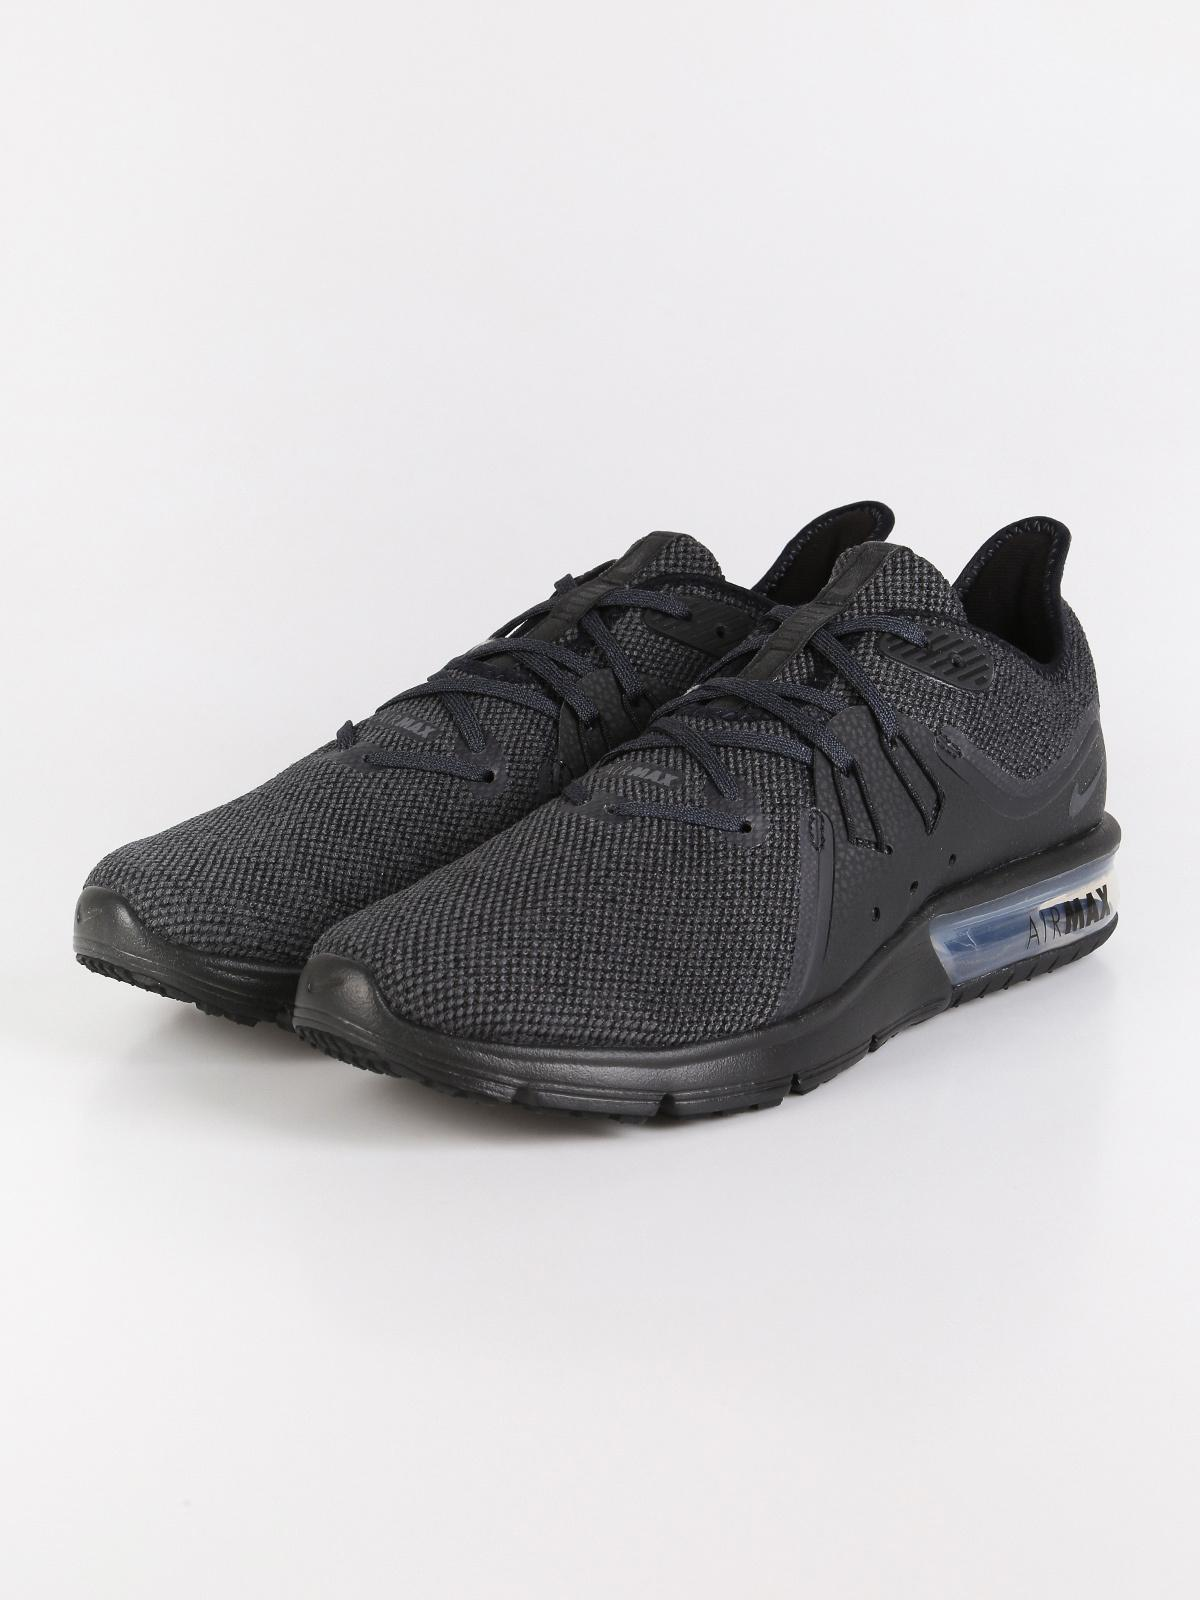 nike Air Max Sequent 3 sneakers sportive uomo | MecShopping